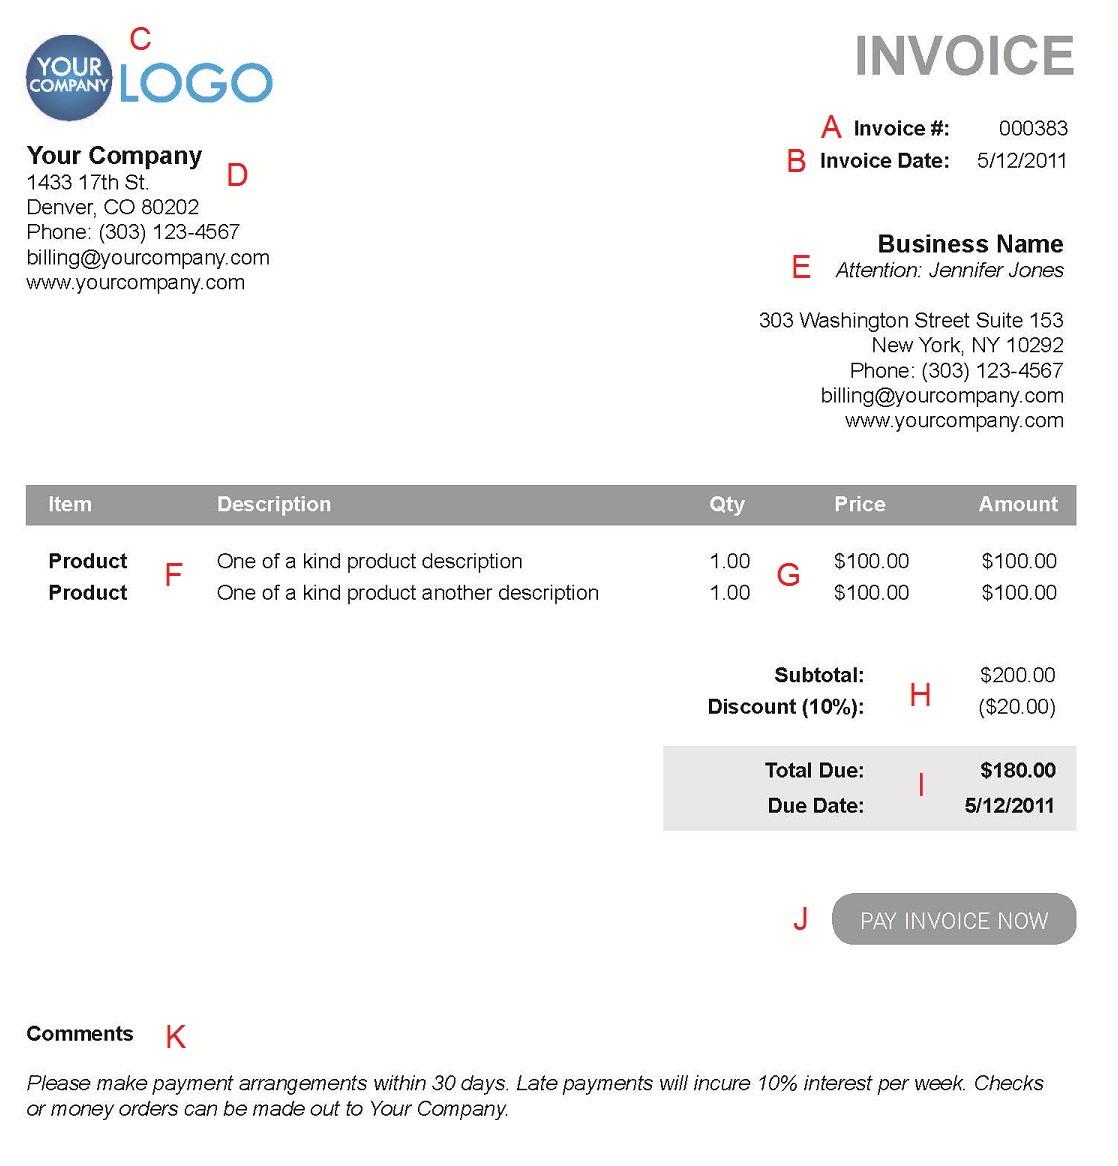 Pigbrotherus  Marvelous The  Different Sections Of An Electronic Payment Invoice With Exciting A  With Amazing Toll Invoice Also Cleaning Invoice Template In Addition Dhl Proforma Invoice And Canadian Commercial Invoice As Well As Toyota Tacoma Invoice Price Additionally Free Service Invoice Template From Paysimplecom With Pigbrotherus  Exciting The  Different Sections Of An Electronic Payment Invoice With Amazing A  And Marvelous Toll Invoice Also Cleaning Invoice Template In Addition Dhl Proforma Invoice From Paysimplecom